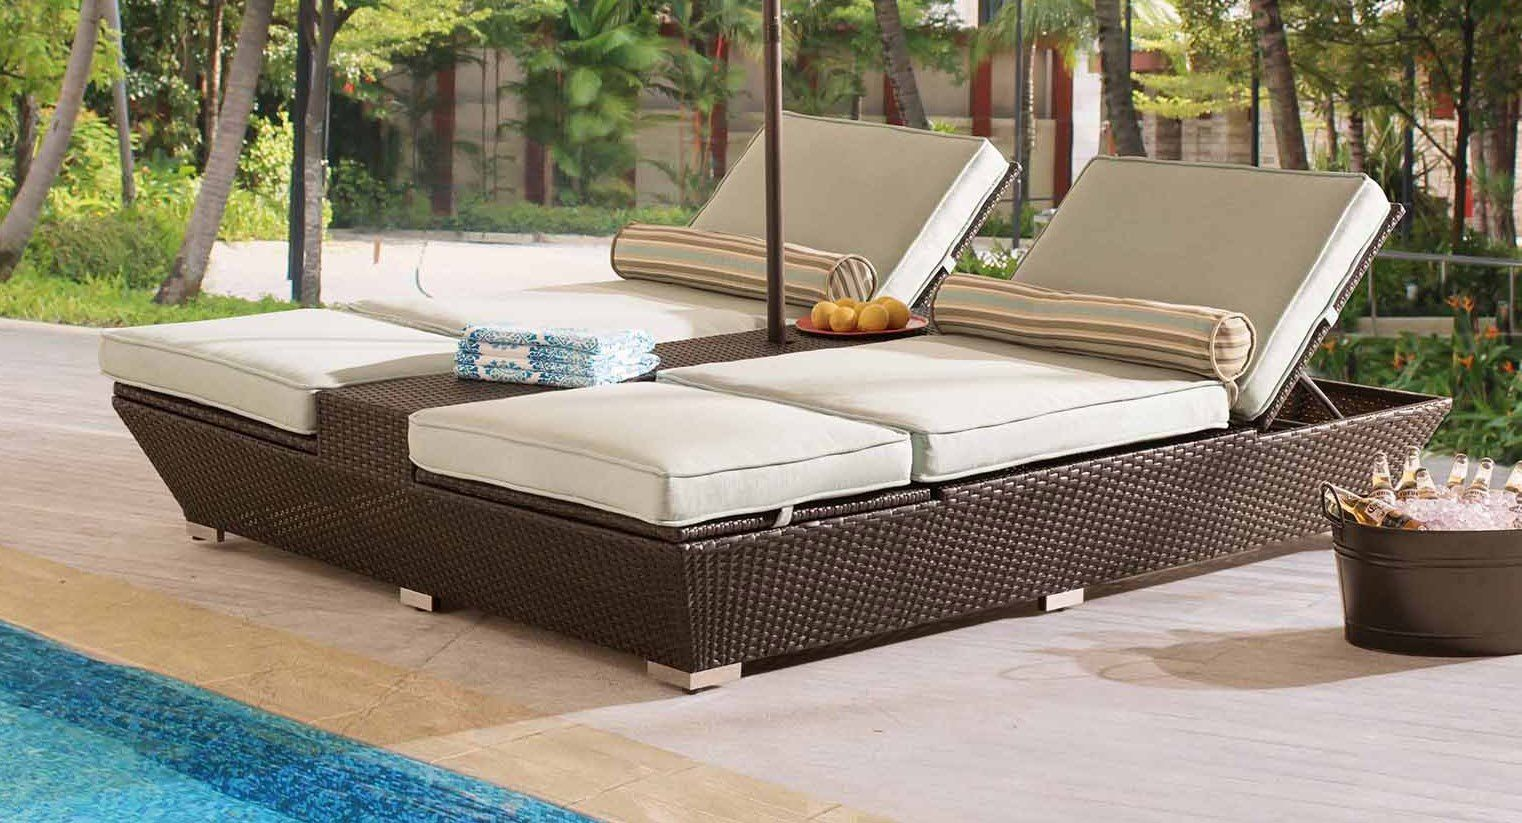 Sunjoy jenny dual adjustable loungers constructed out of